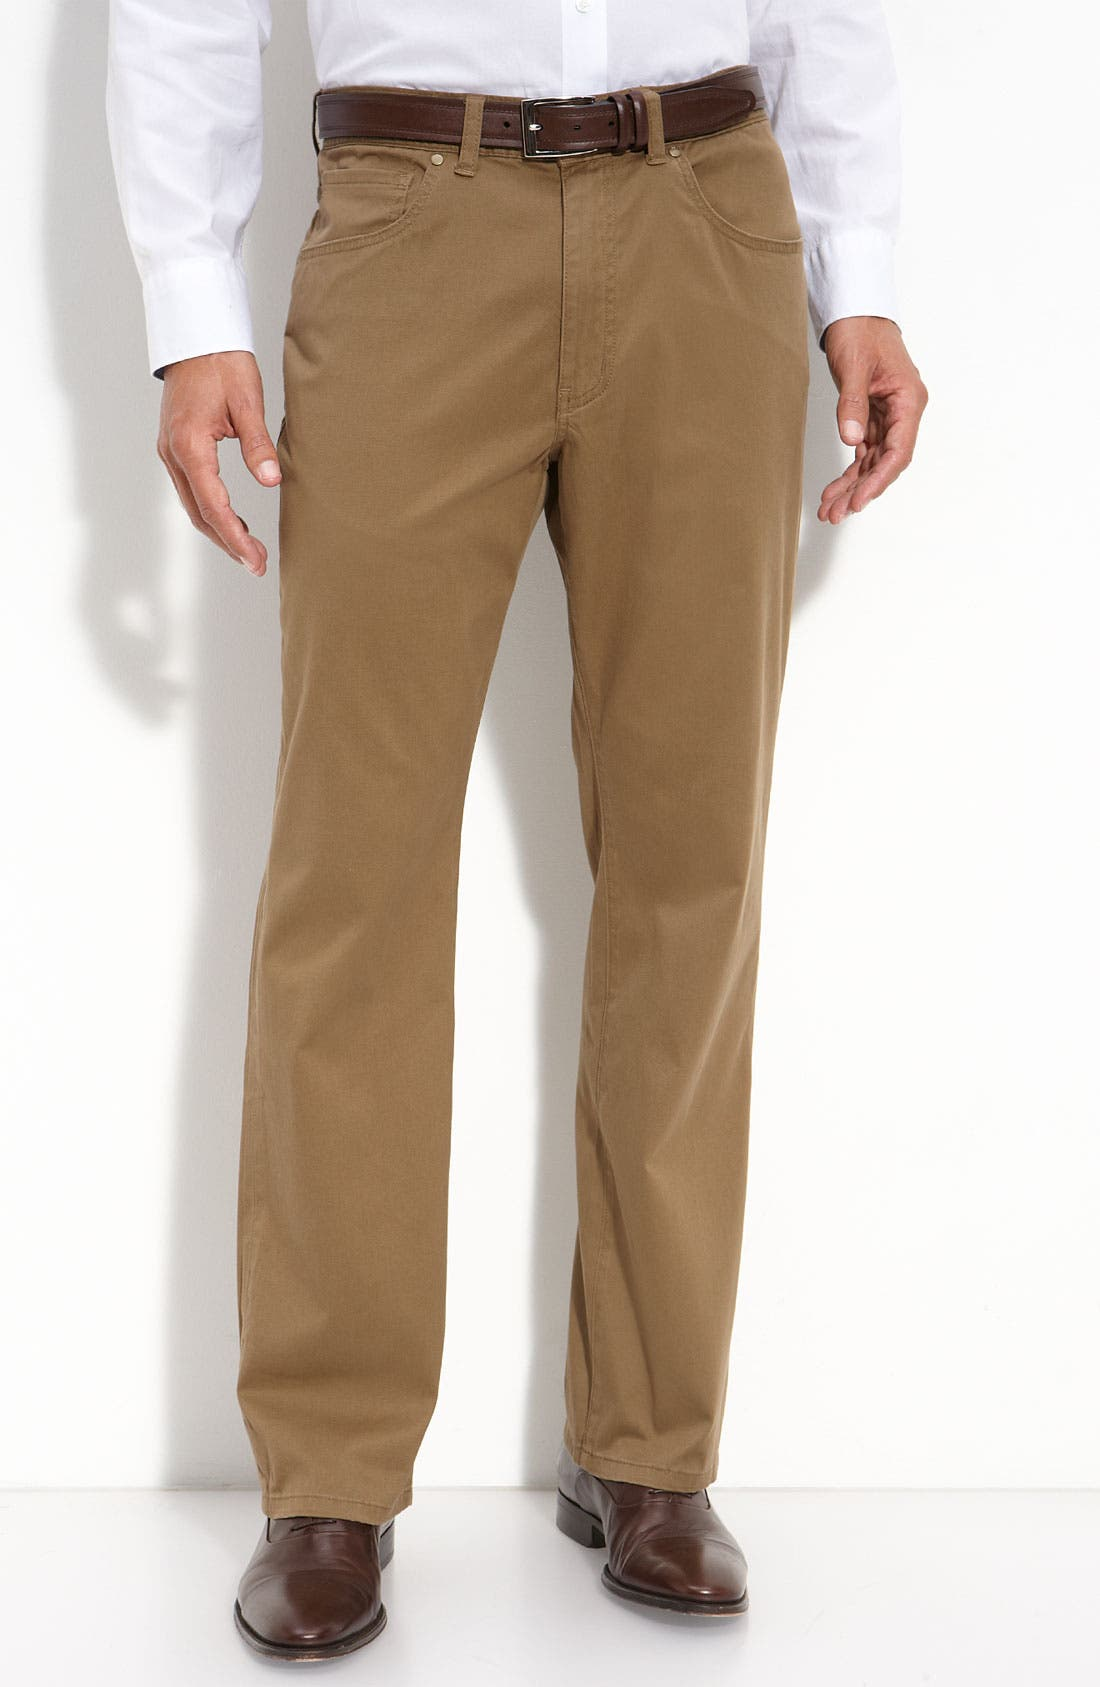 Main Image - Cutter & Buck 'Colin' Twill Pants (Big & Tall)